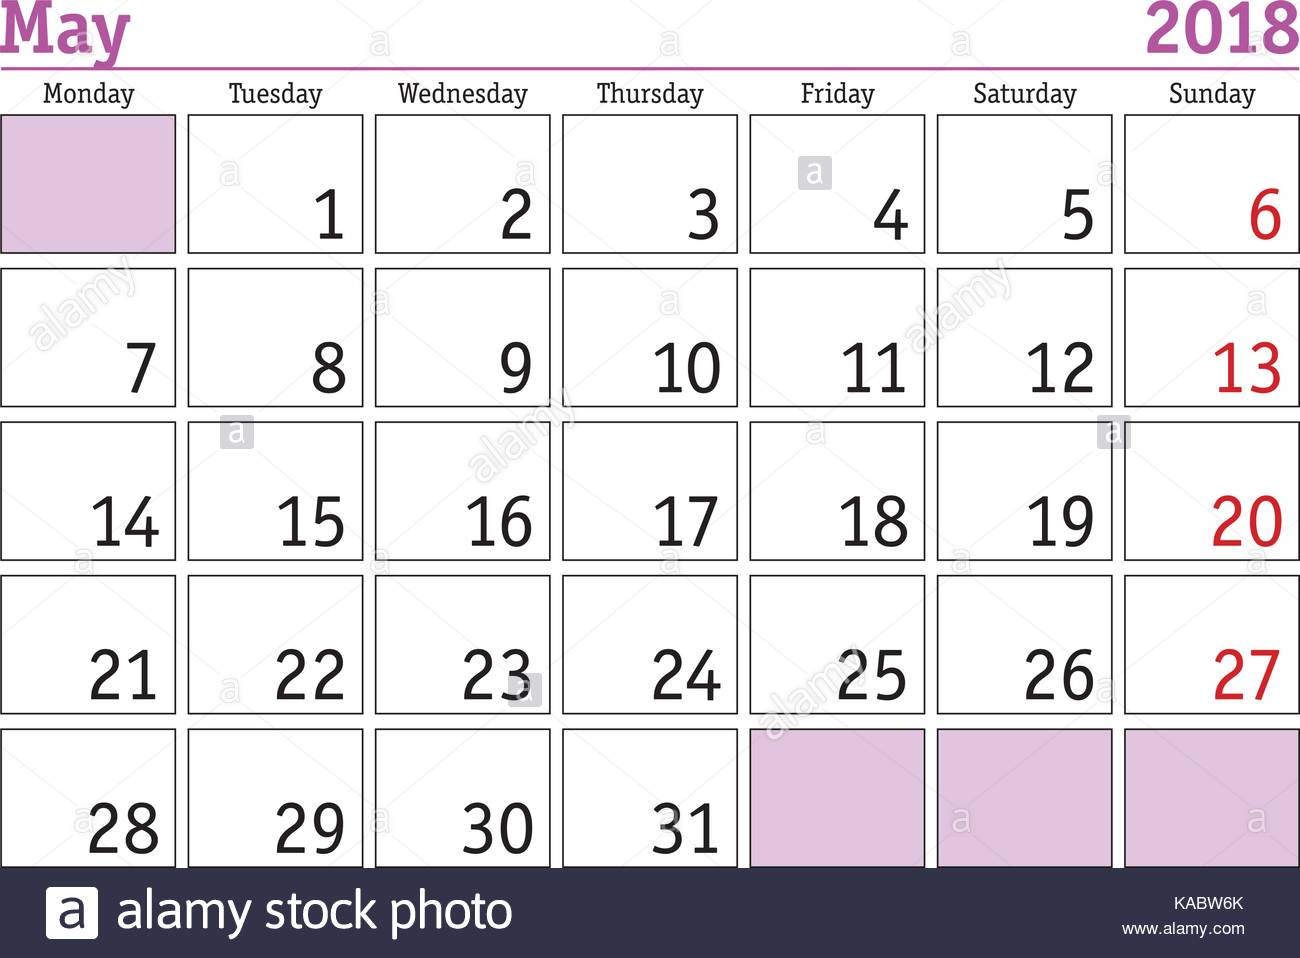 Calendar May Monday : May day weekend stock vector images alamy